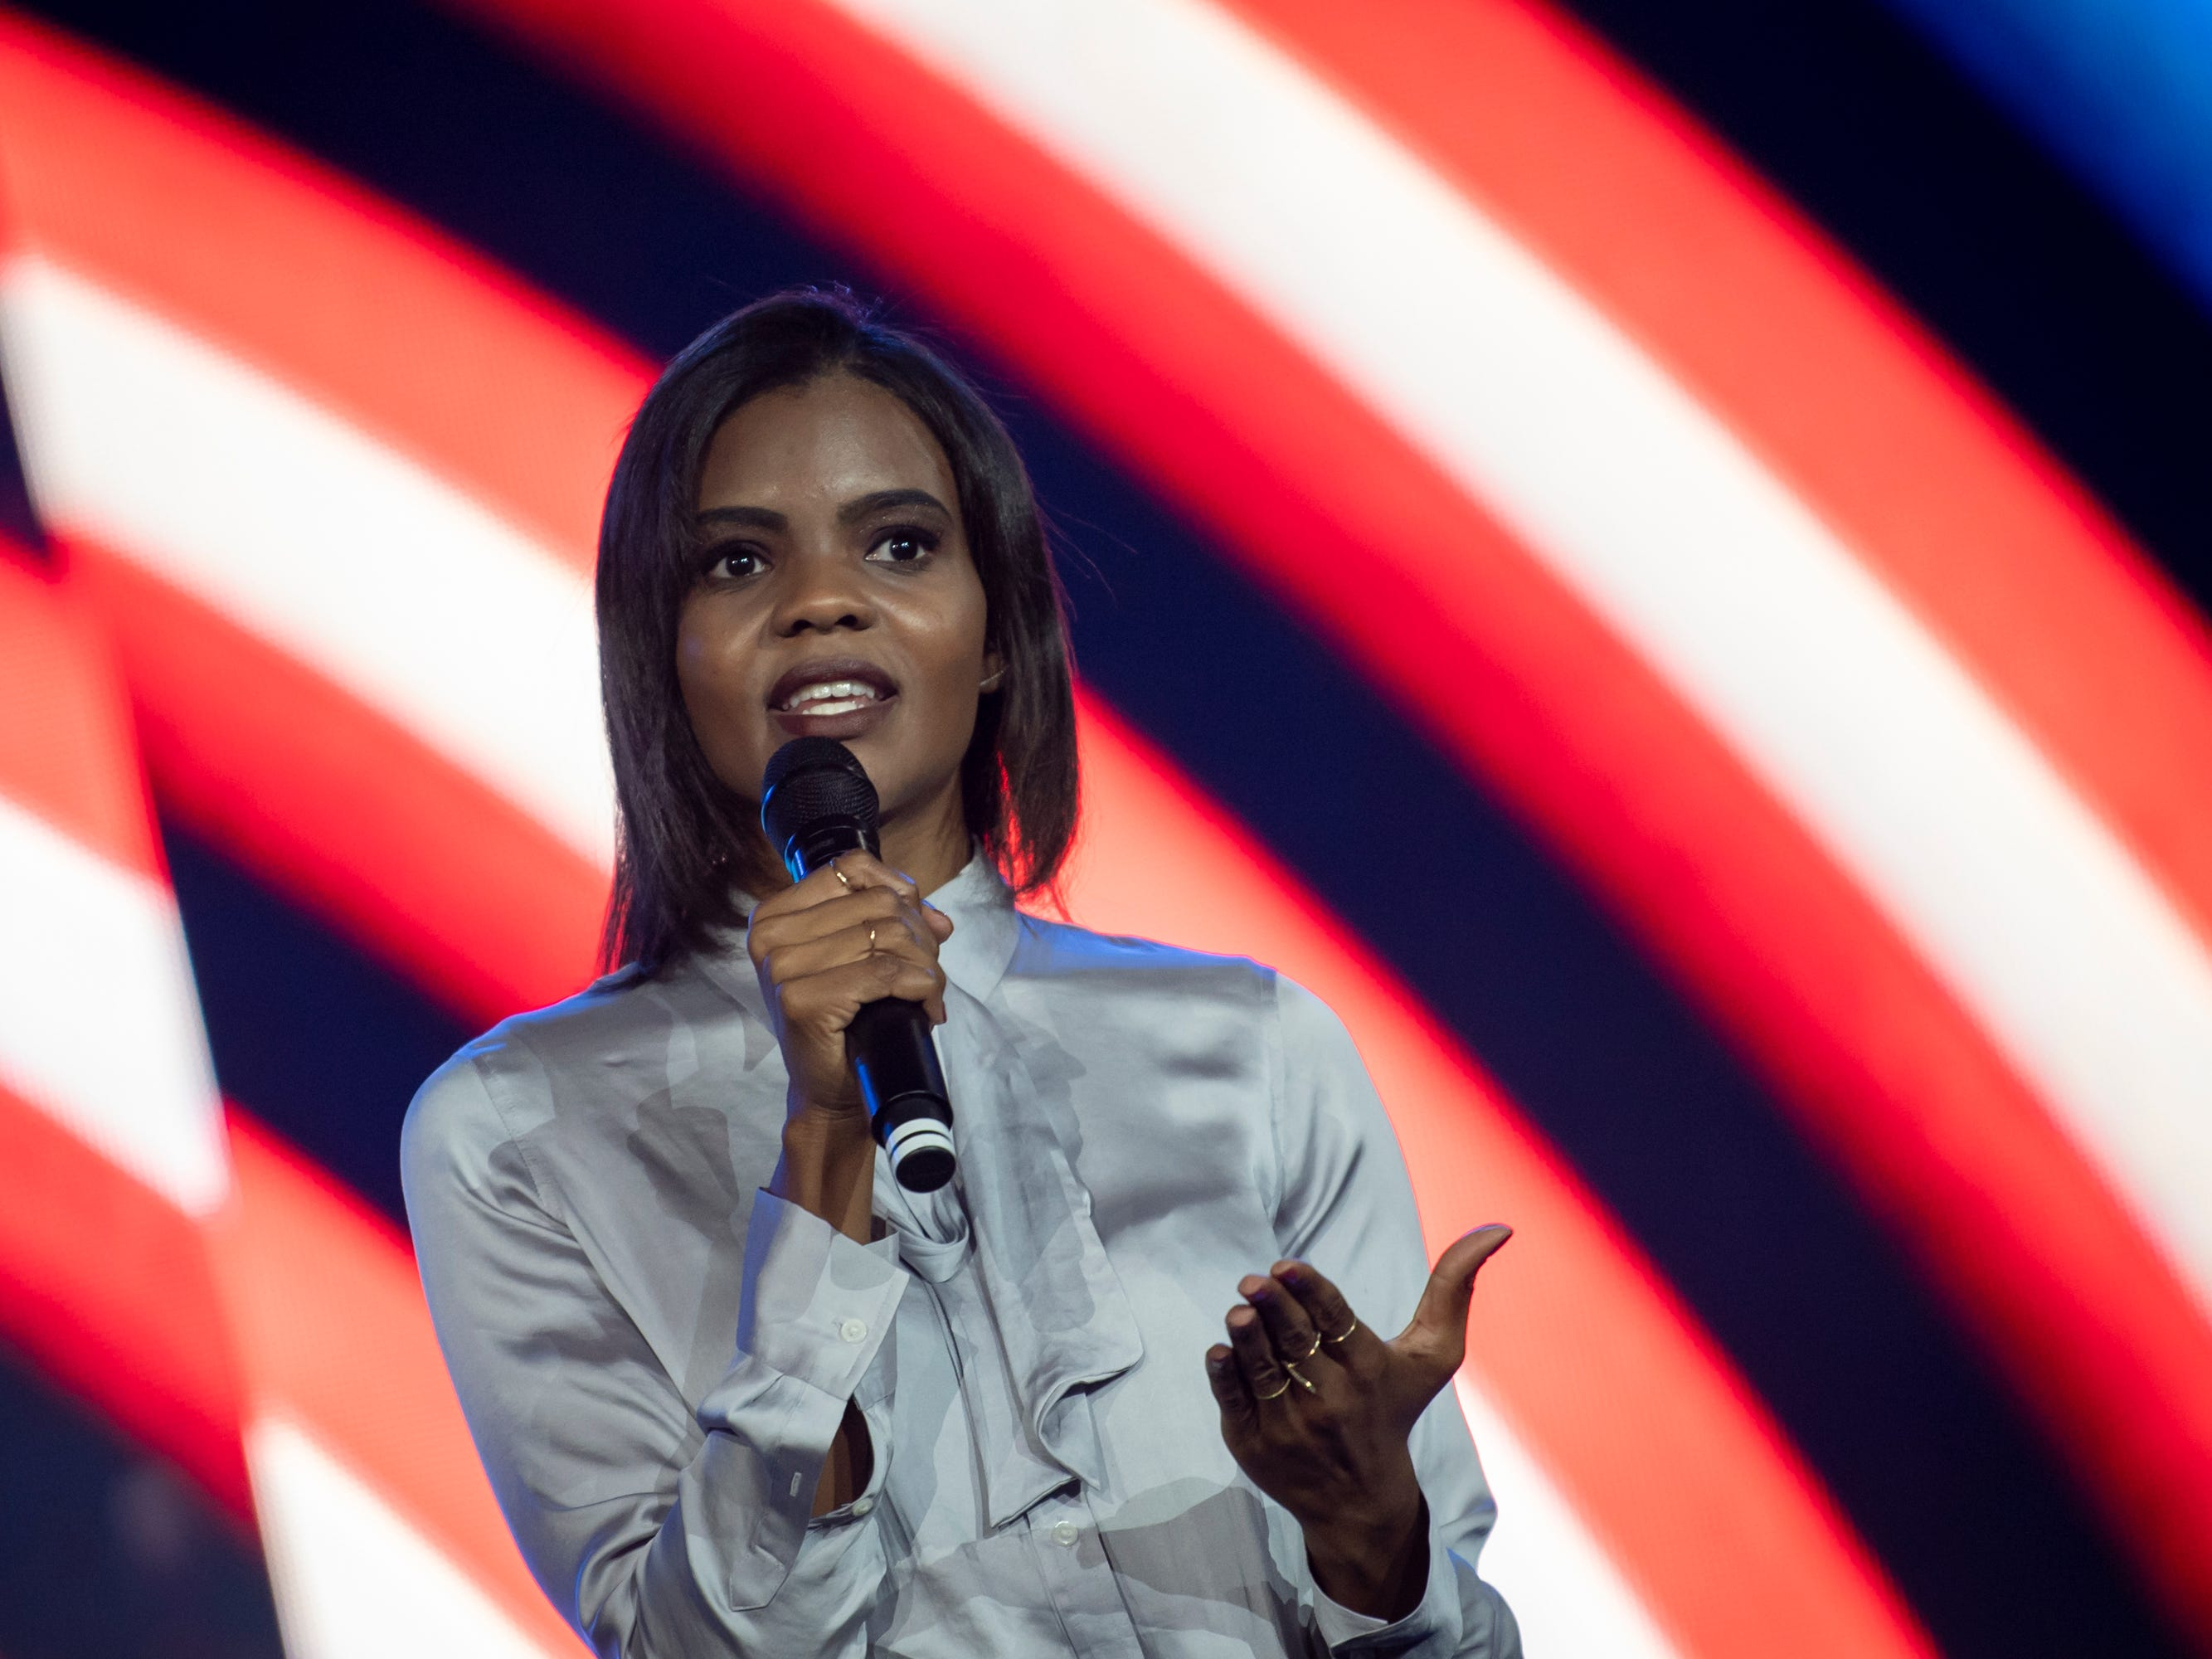 Candace Owens' rapid rise defending two of America's most complicated men: Trump and Kanye